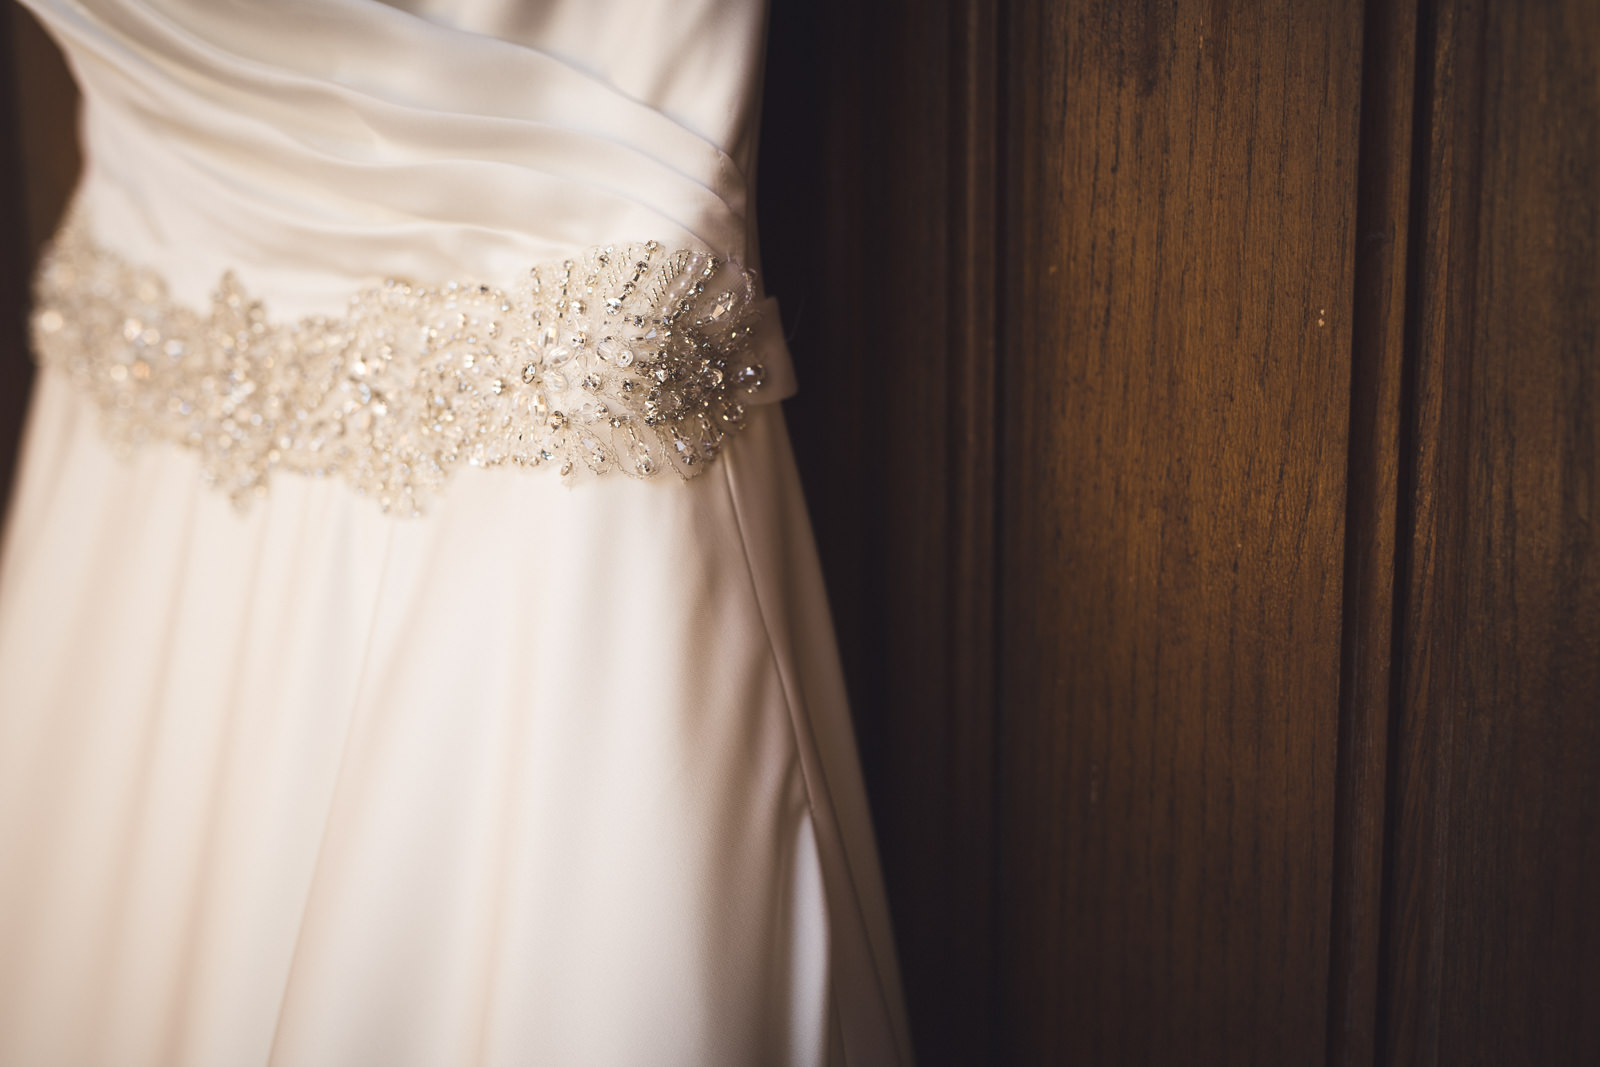 des-moines-wedding-k-c-9582-wedding-photographer-des-moines-iowa-k-c.jpg